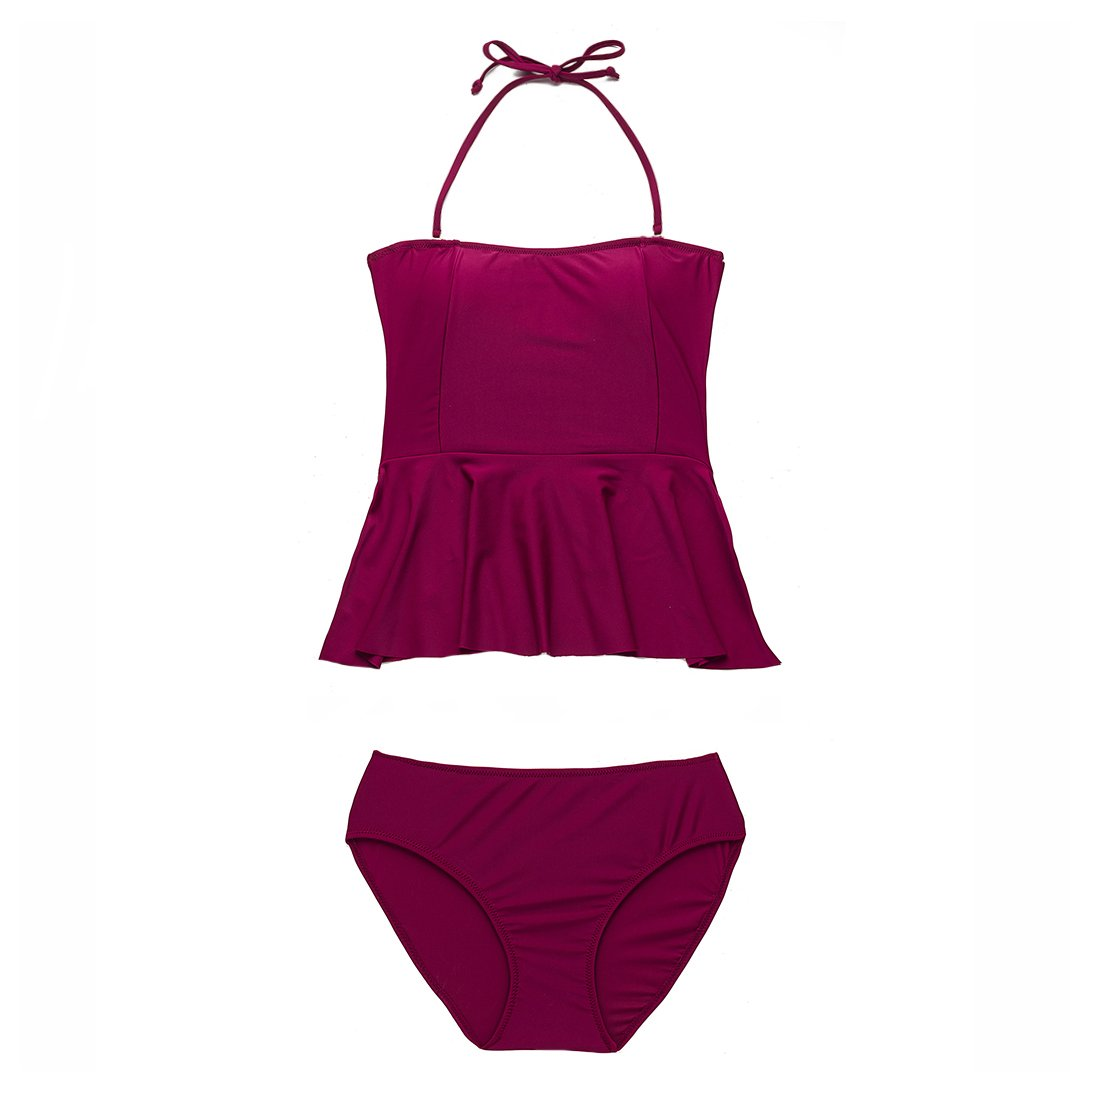 MEATFLY.Women's Swimsuit High Waisted Swimwear Two Piece Bathing Suit Tankini (Wine Red, US 8-10=Tag Size L)